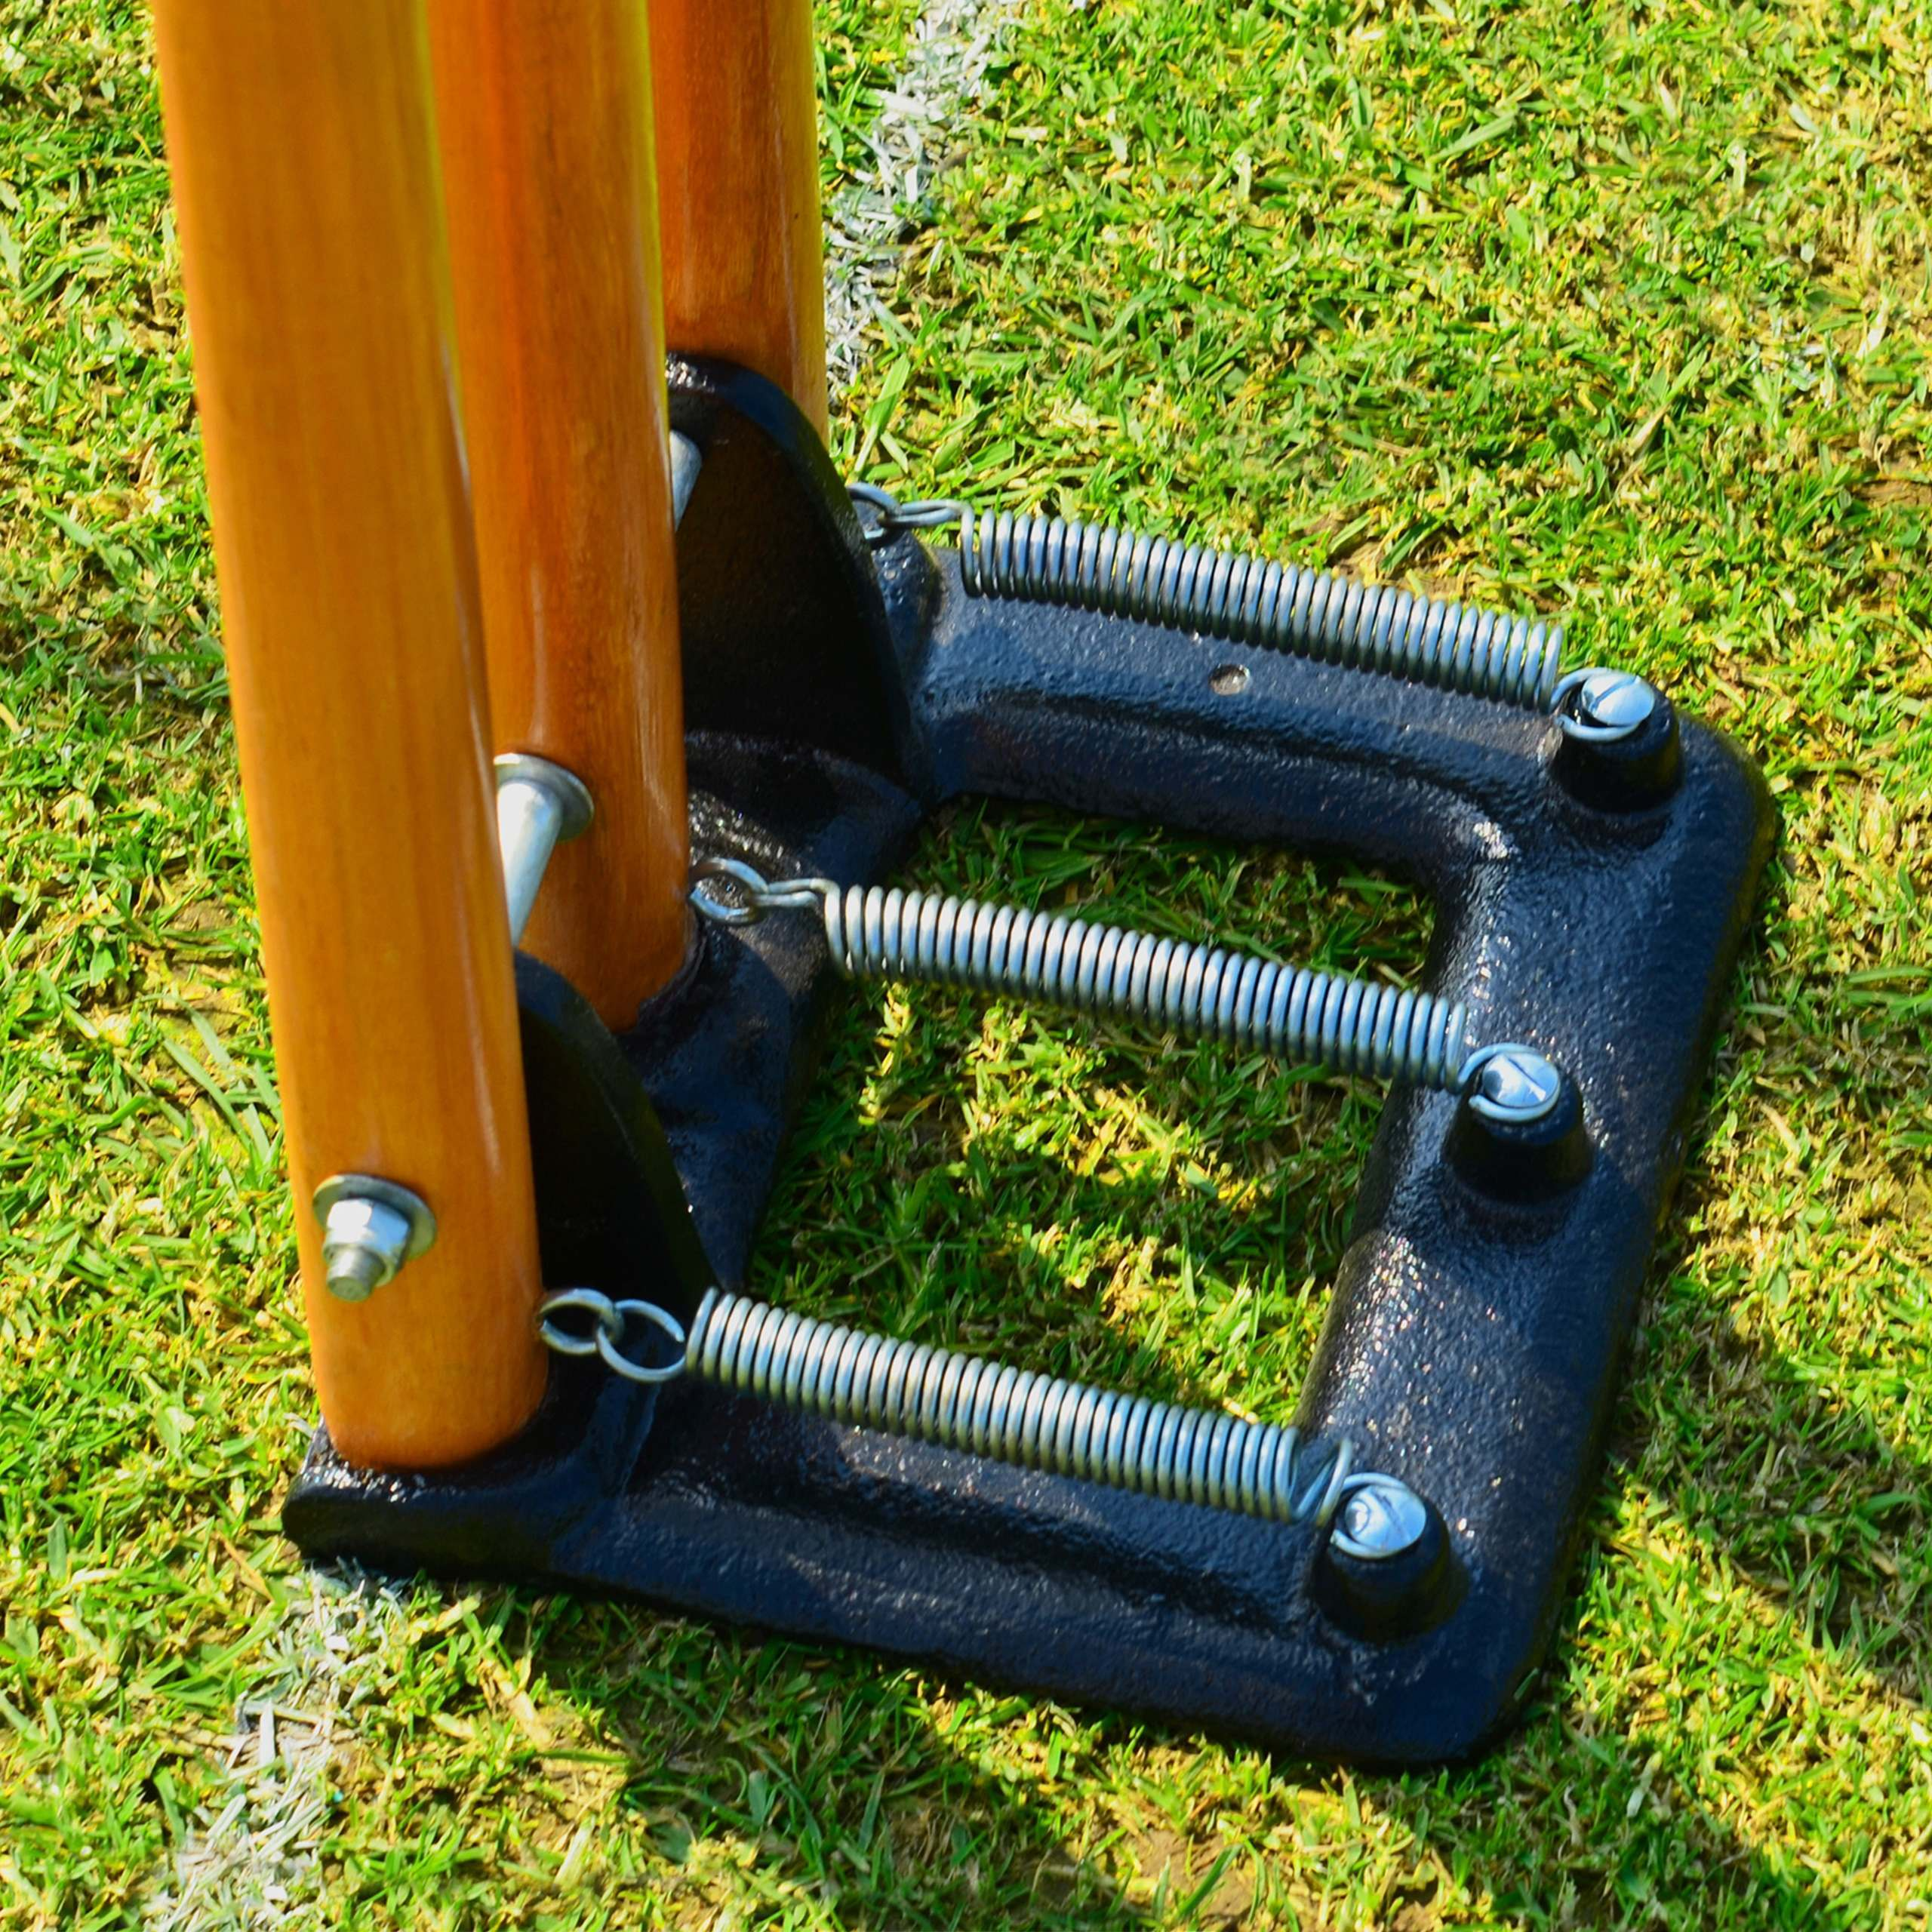 Stumps for cricket practice